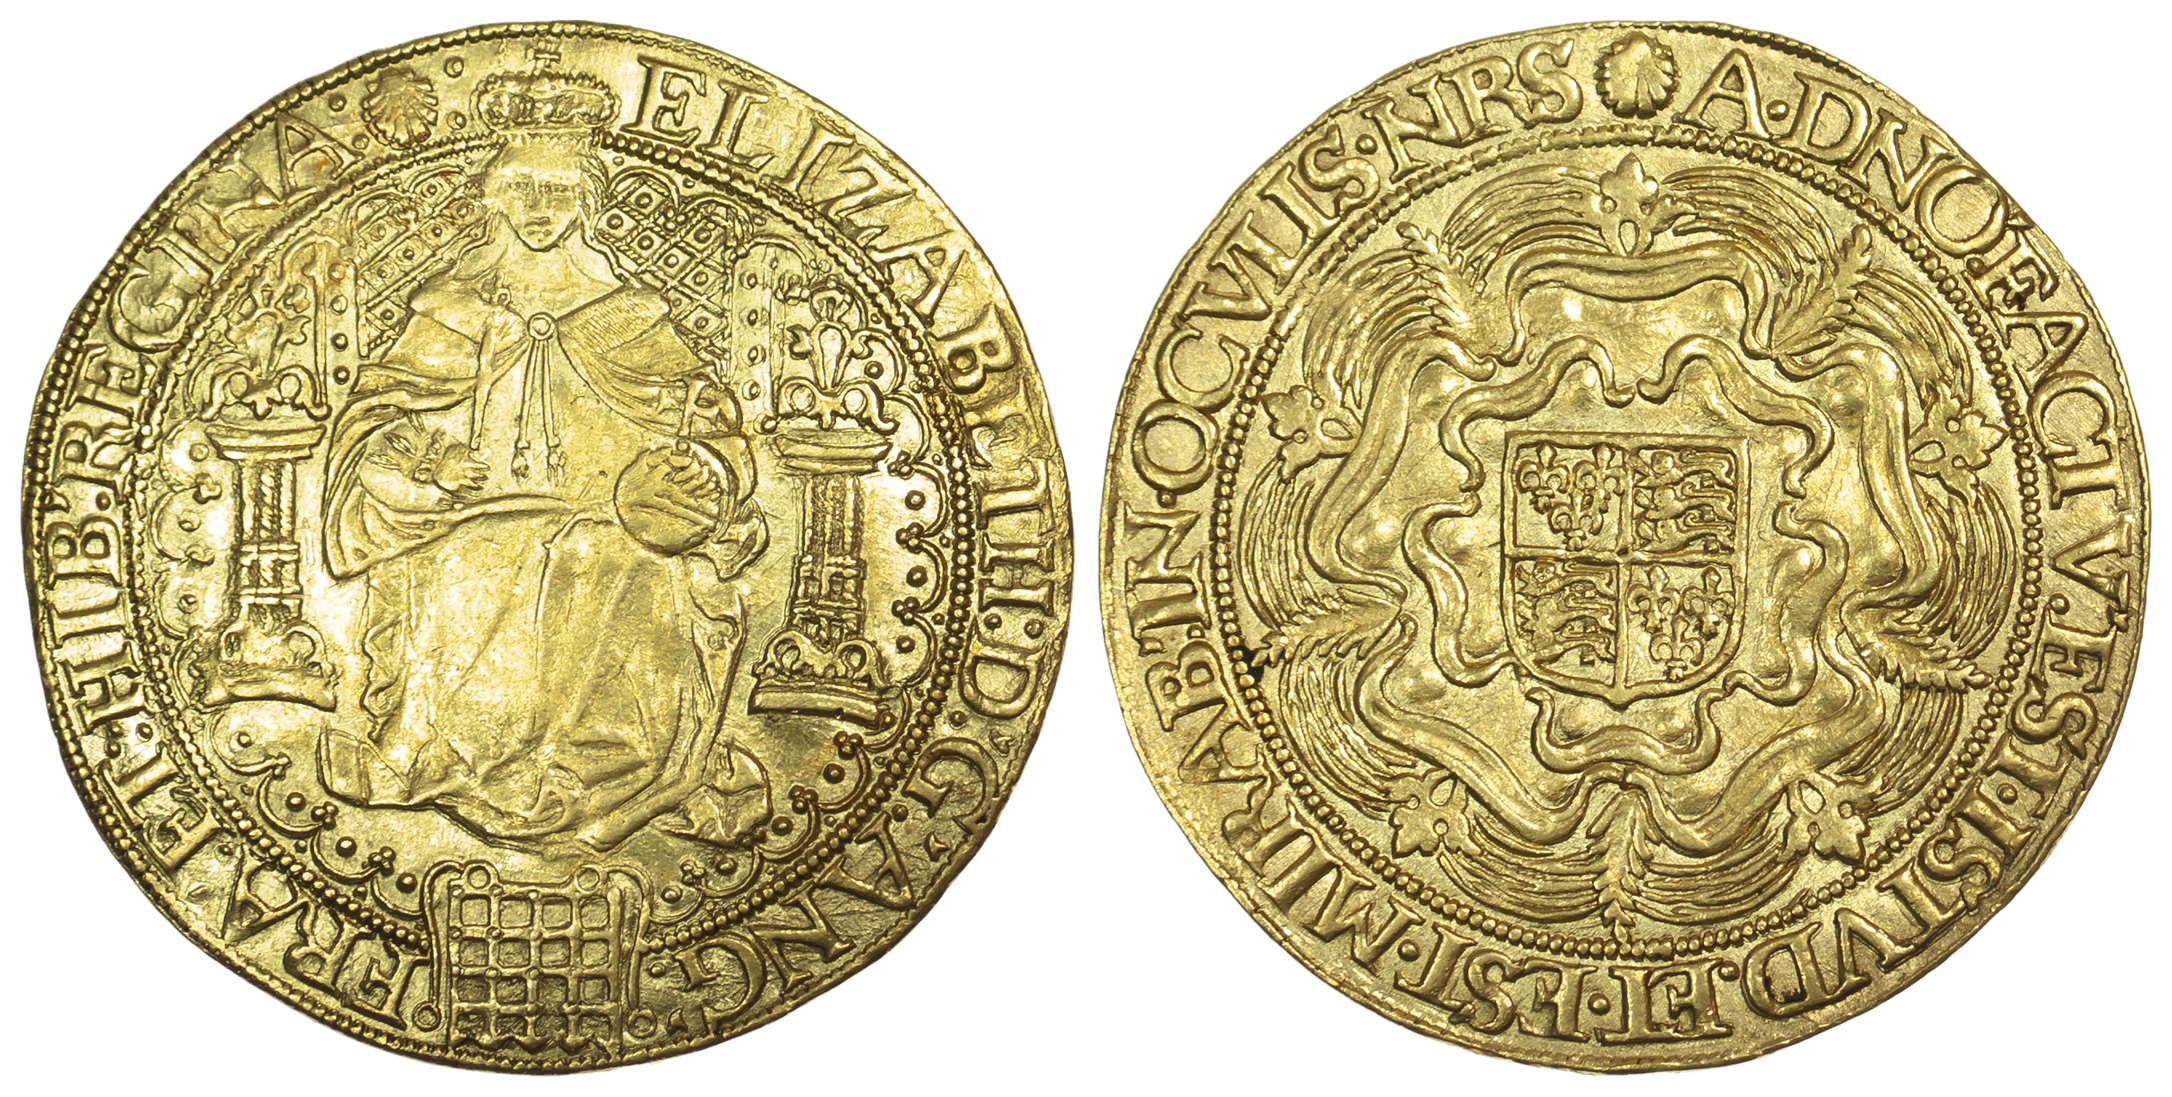 Elizabeth I, Sovereign